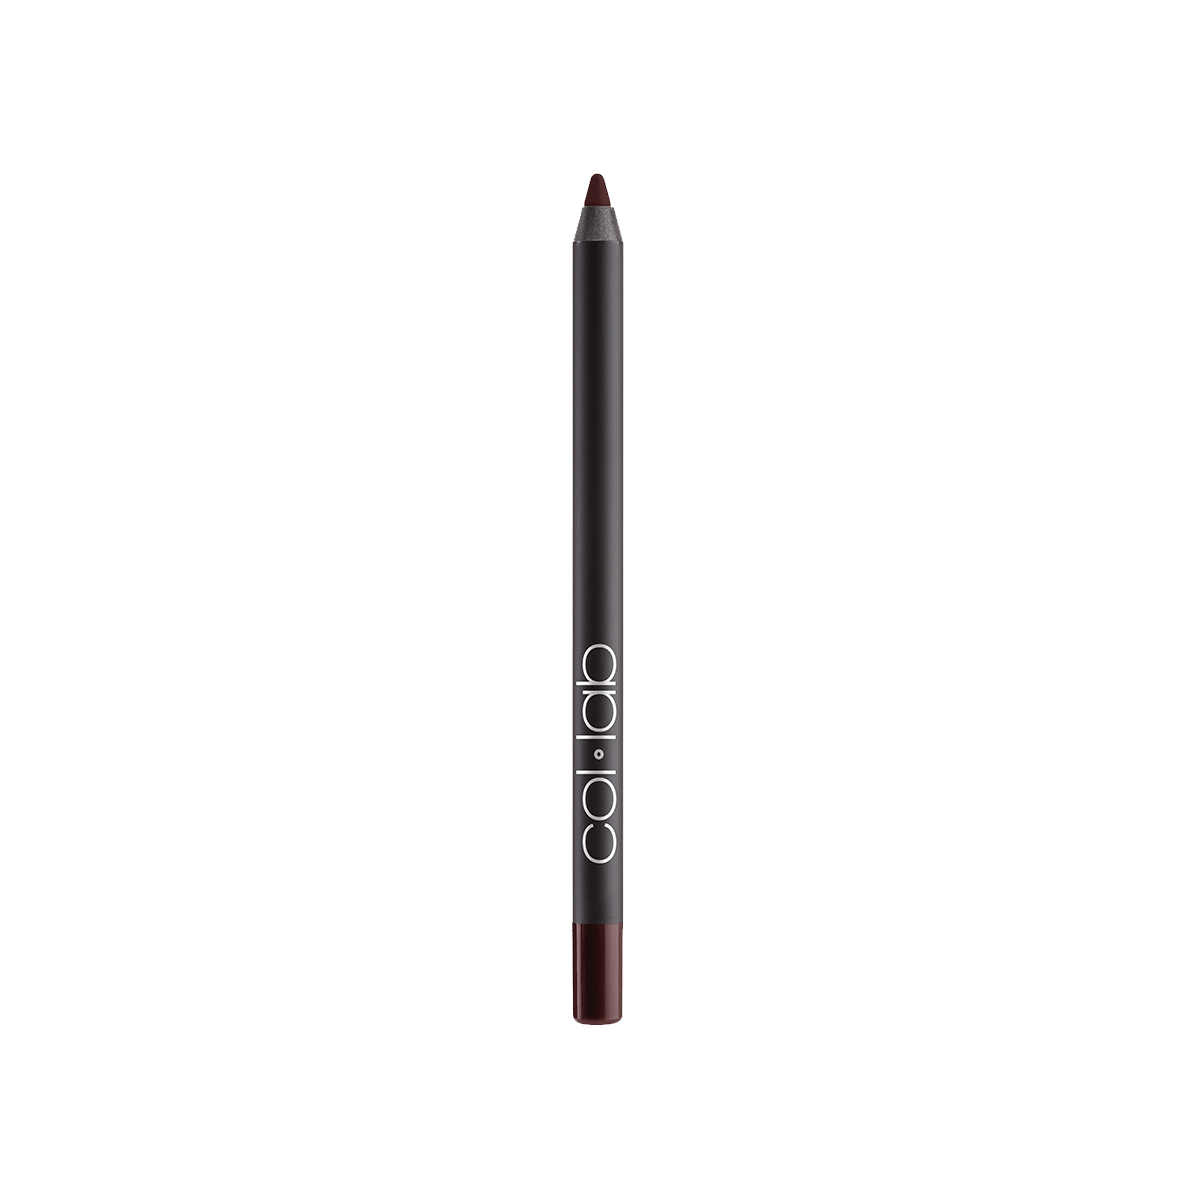 collab-bold-faced liner-waterproof-eye-lining-pencil-ego-open.png